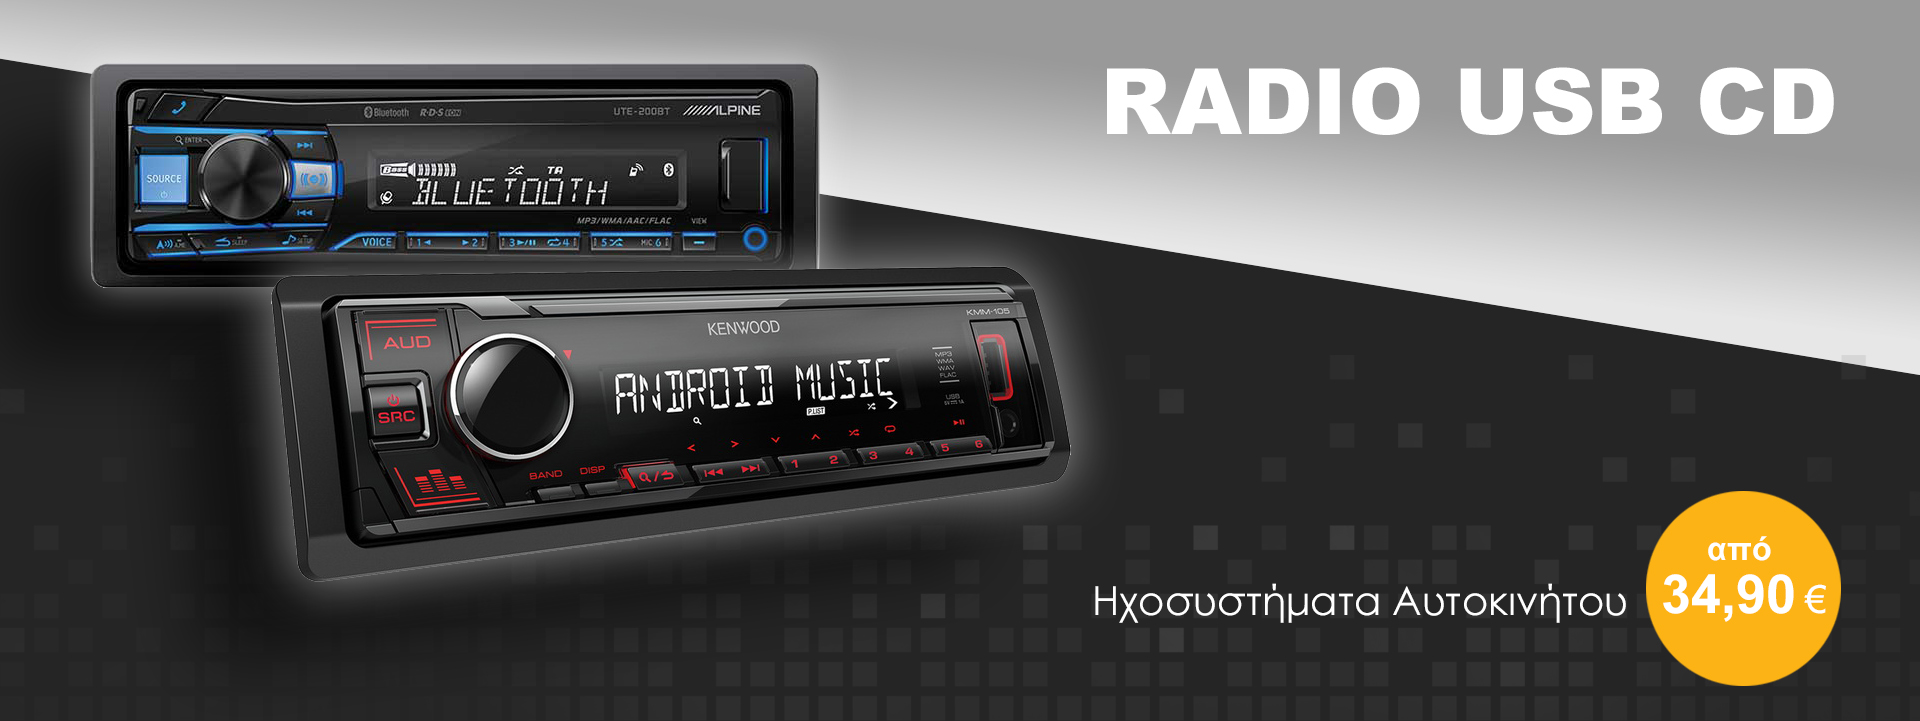 Radio USB CD